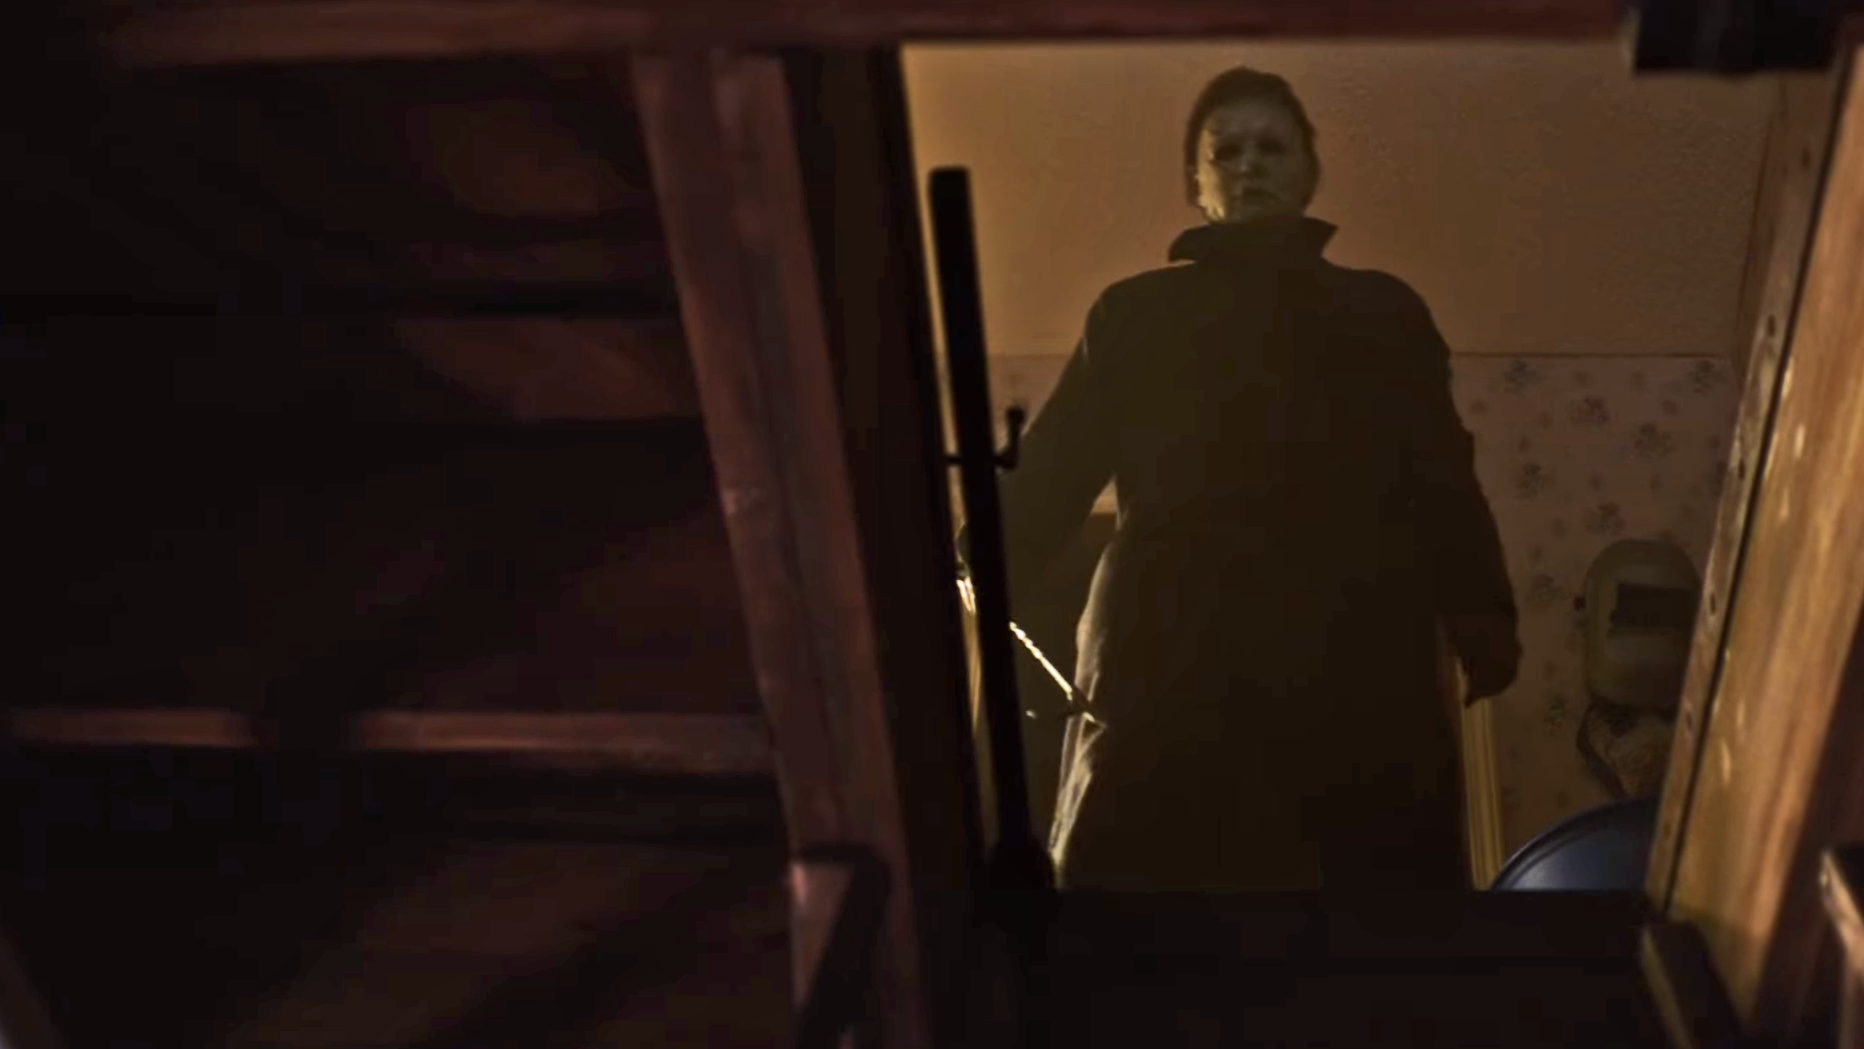 In The NewHalloween Trailer,Michael Myers Might Meet His Maker